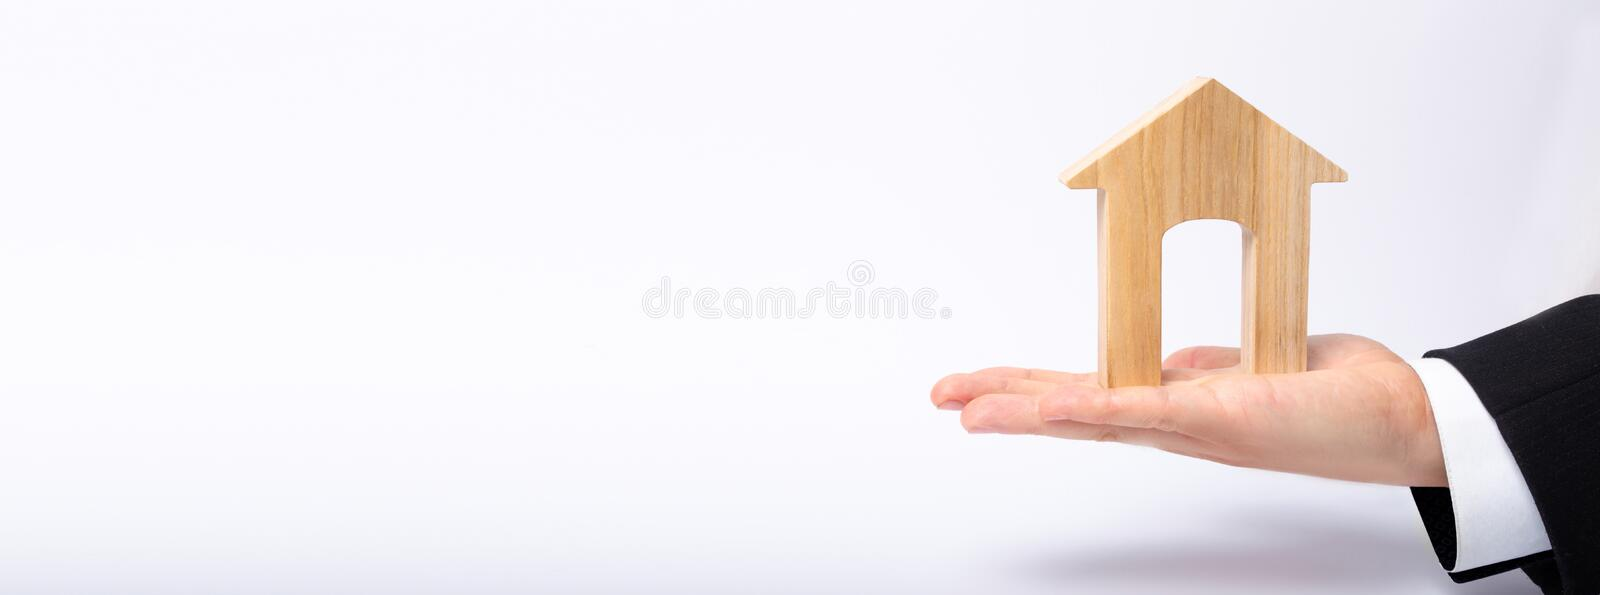 The businessman`s hand stretches a wooden house with a large doorway. The concept of commercial real estate. The purchase and sale of residential buildings stock photography